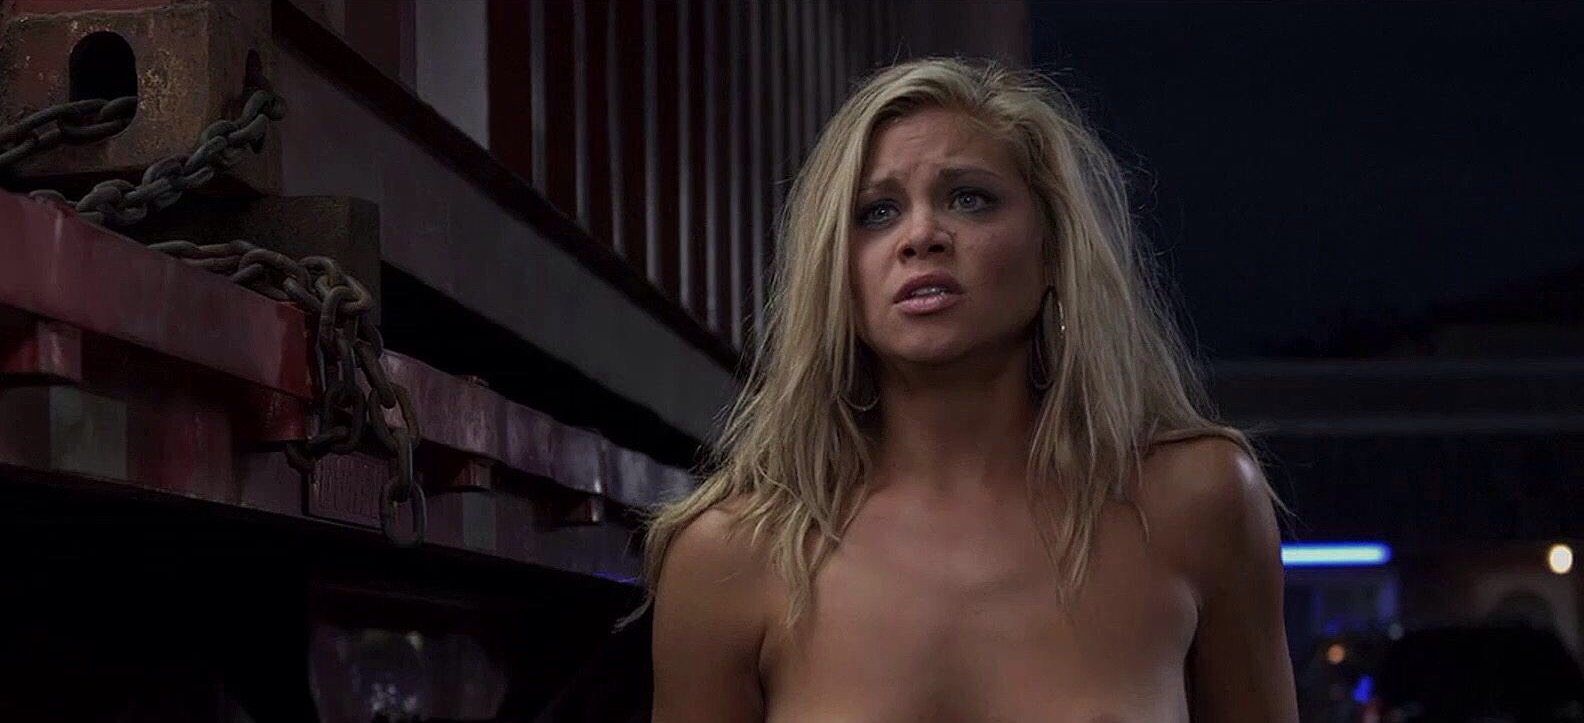 Nudity and sex in horror: Why is it so one sided?